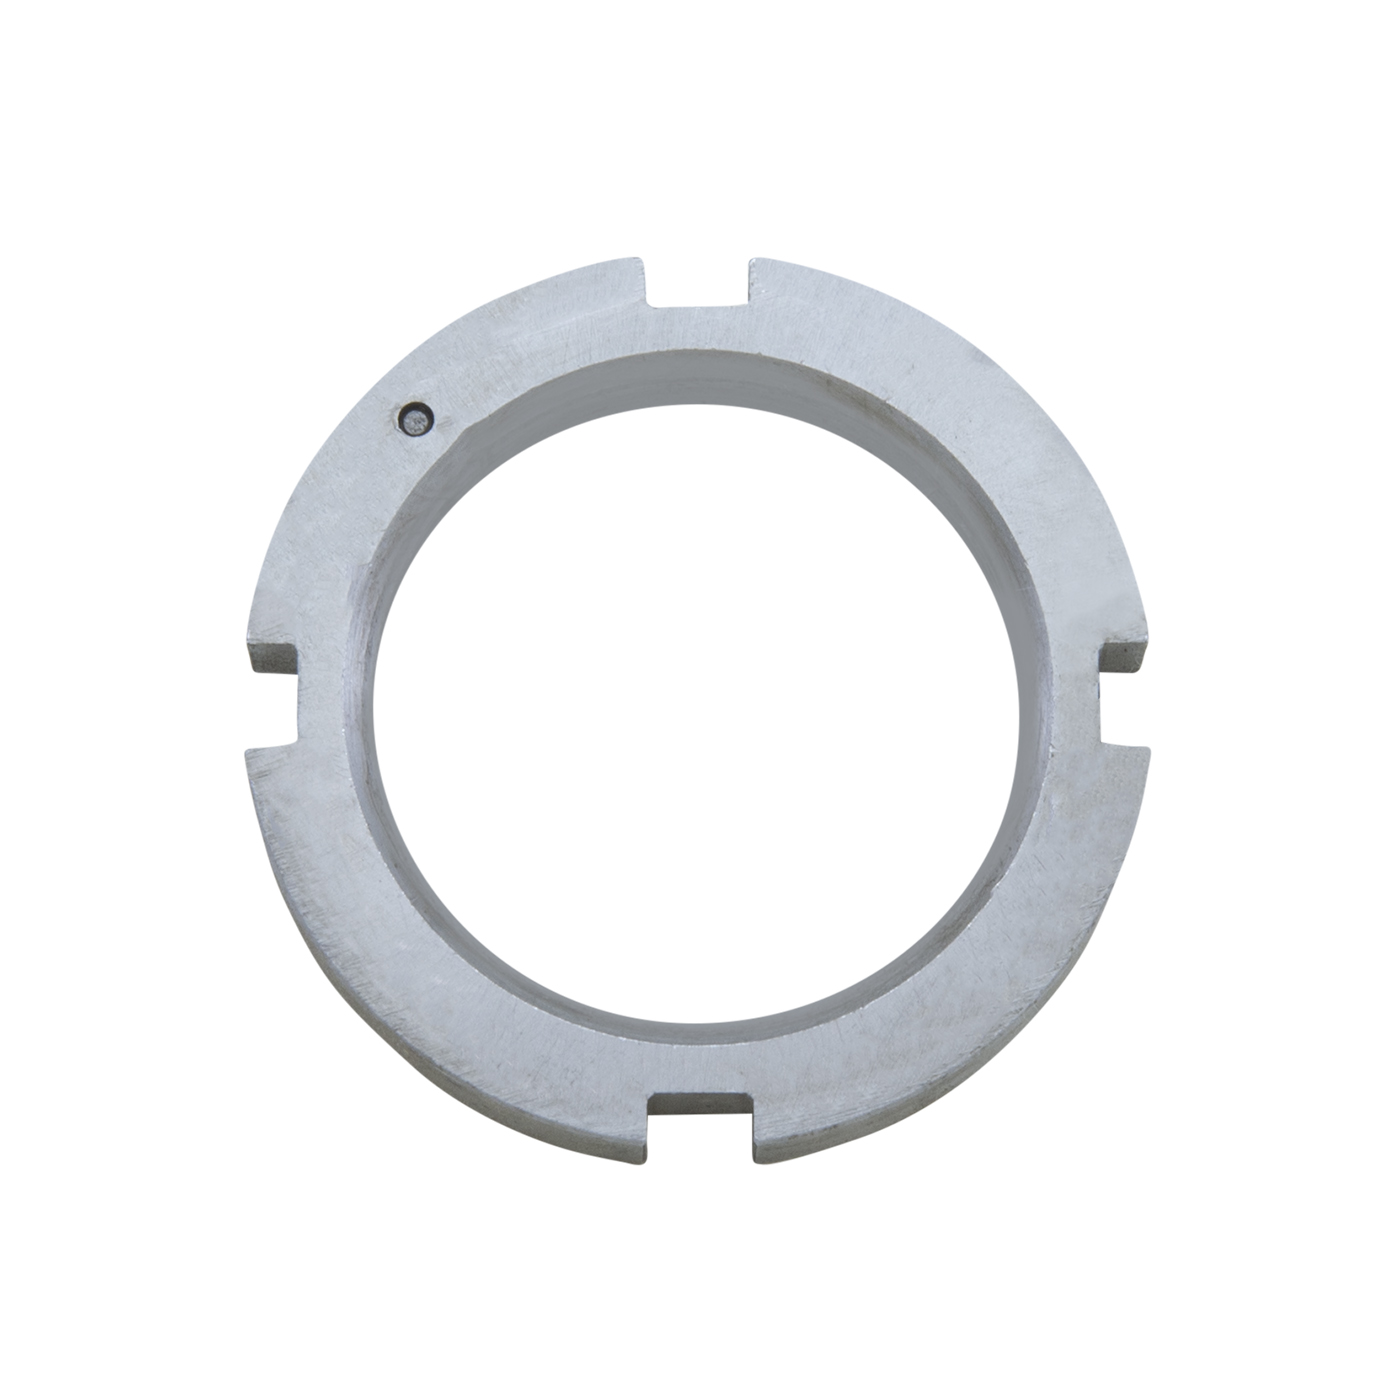 YSPSP-015 - Spindle nut washer for Dana 28, 1992 & down